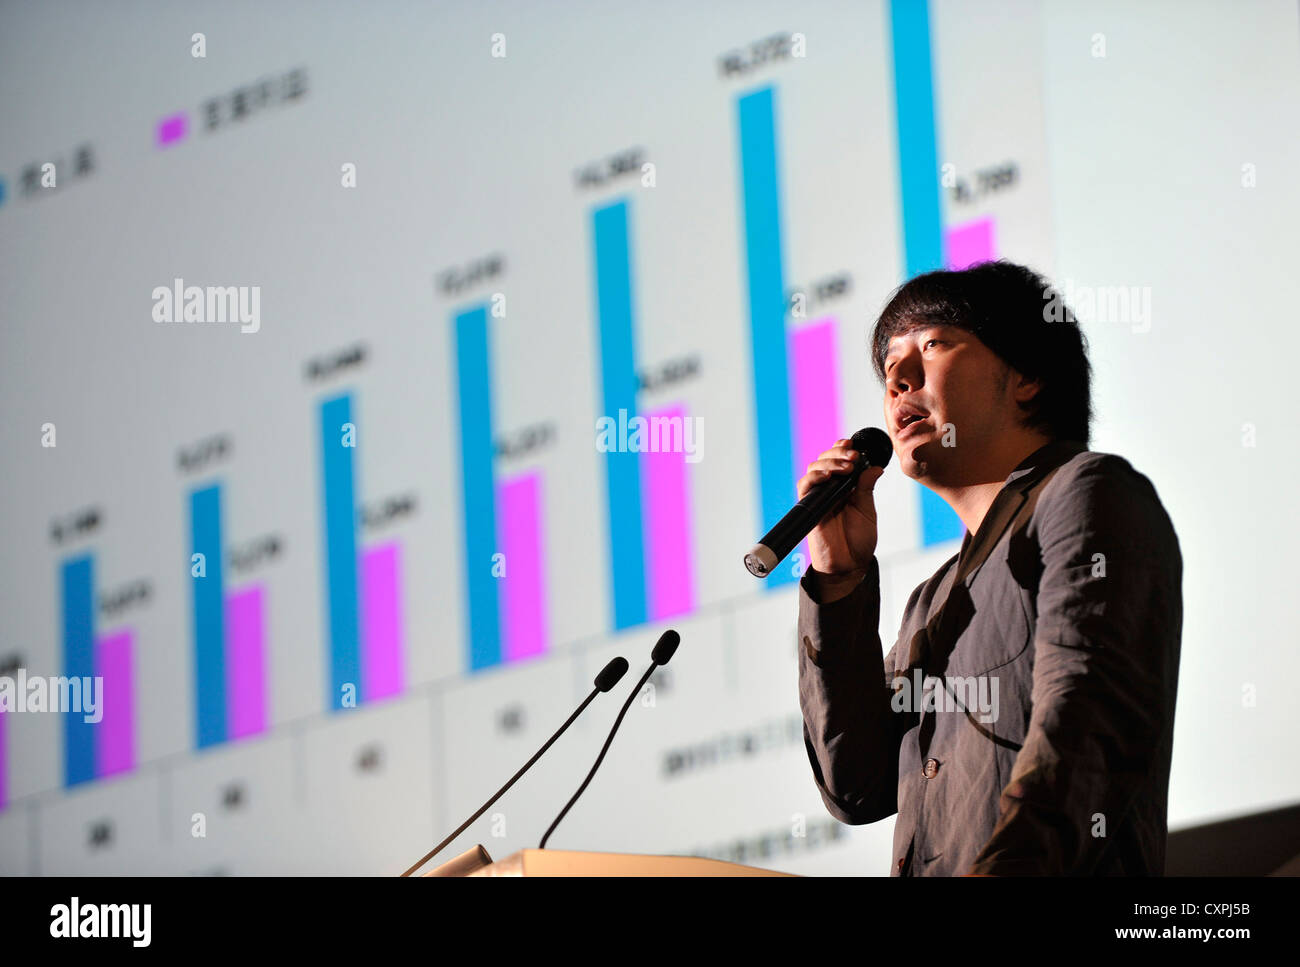 Yoshikazu Tanaka, president of social networking service Gree Inc., delivers a keynote speech at the Tokyo Game - Stock Image